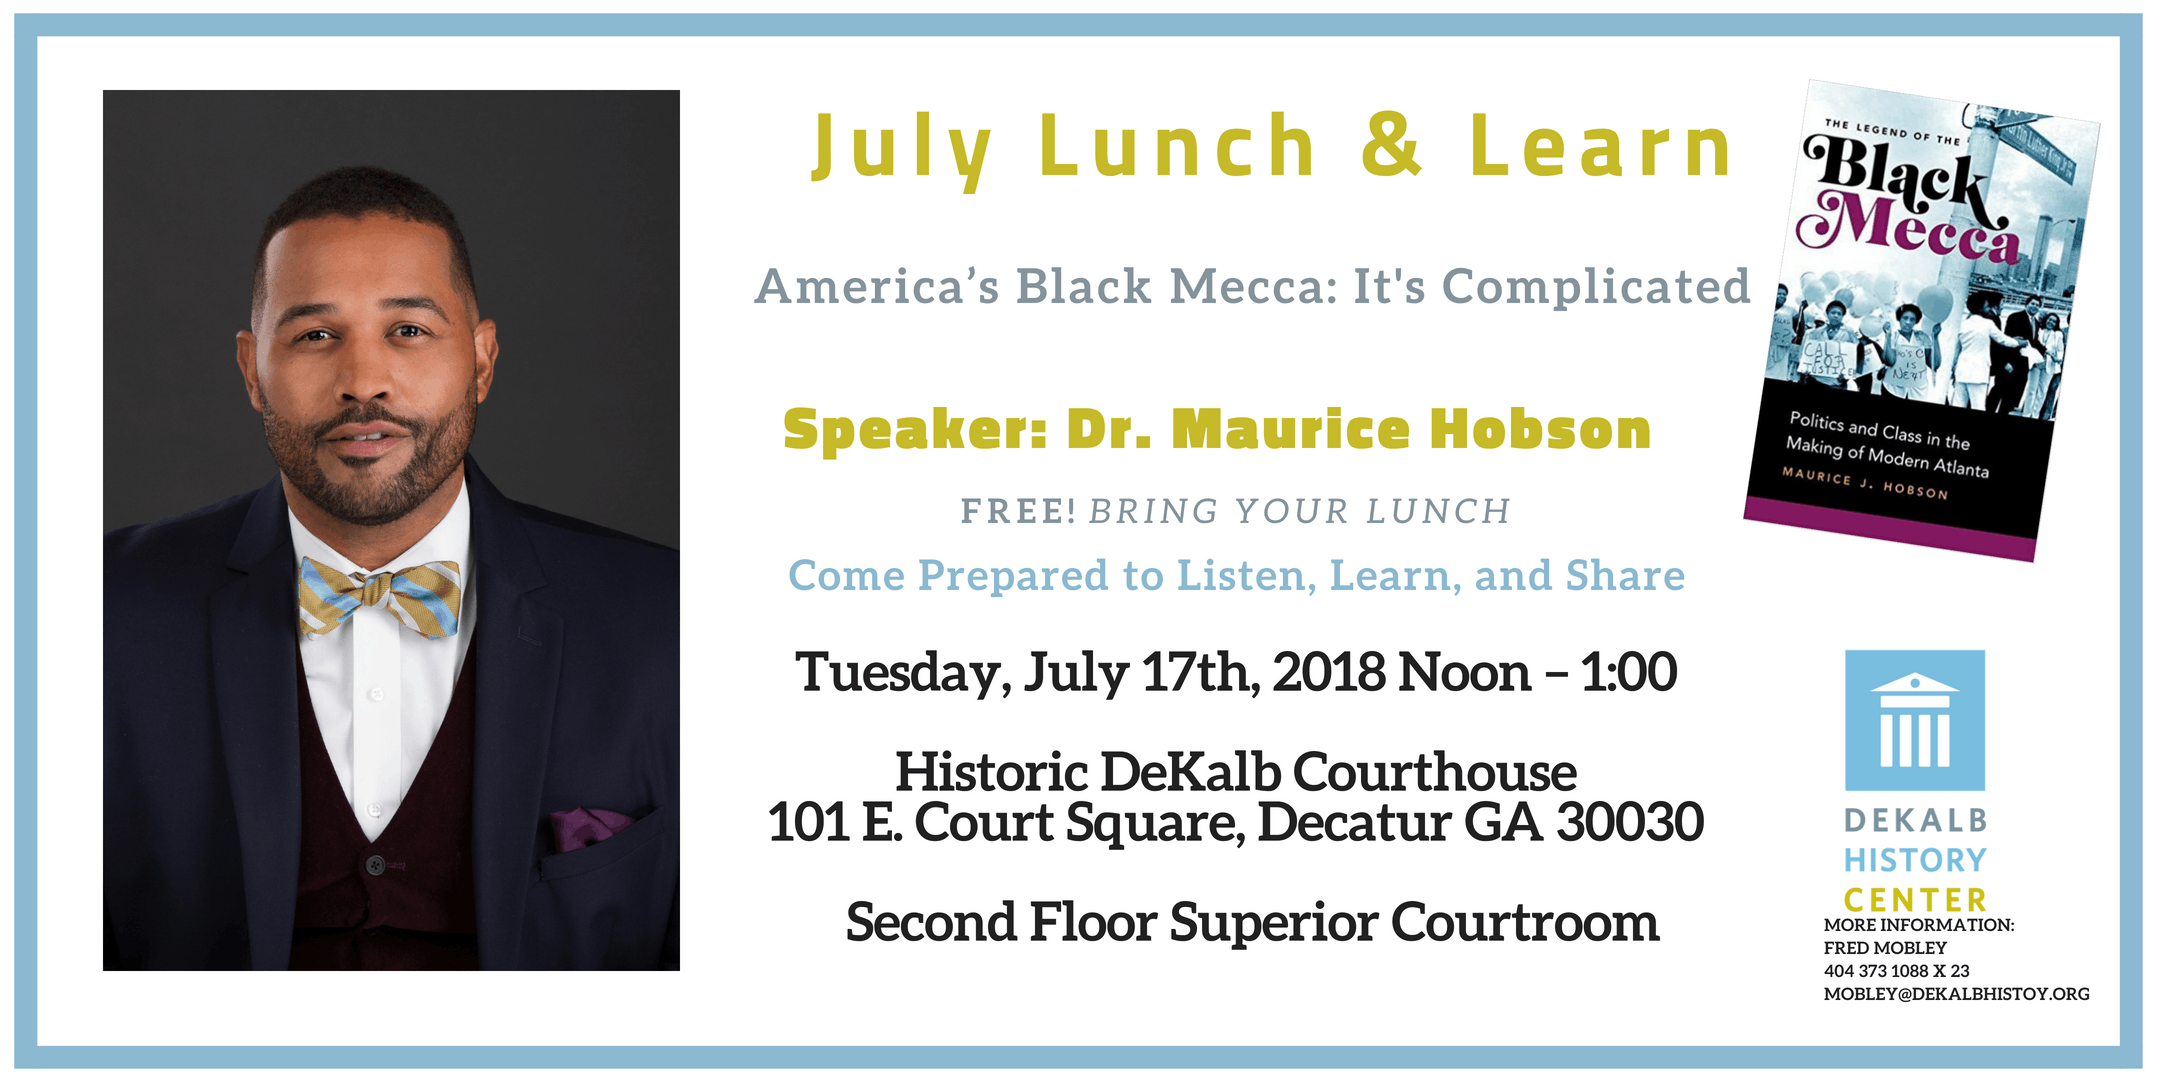 The Black Mecca: It's Complicated Lunch & Learn with Dr. Hobson